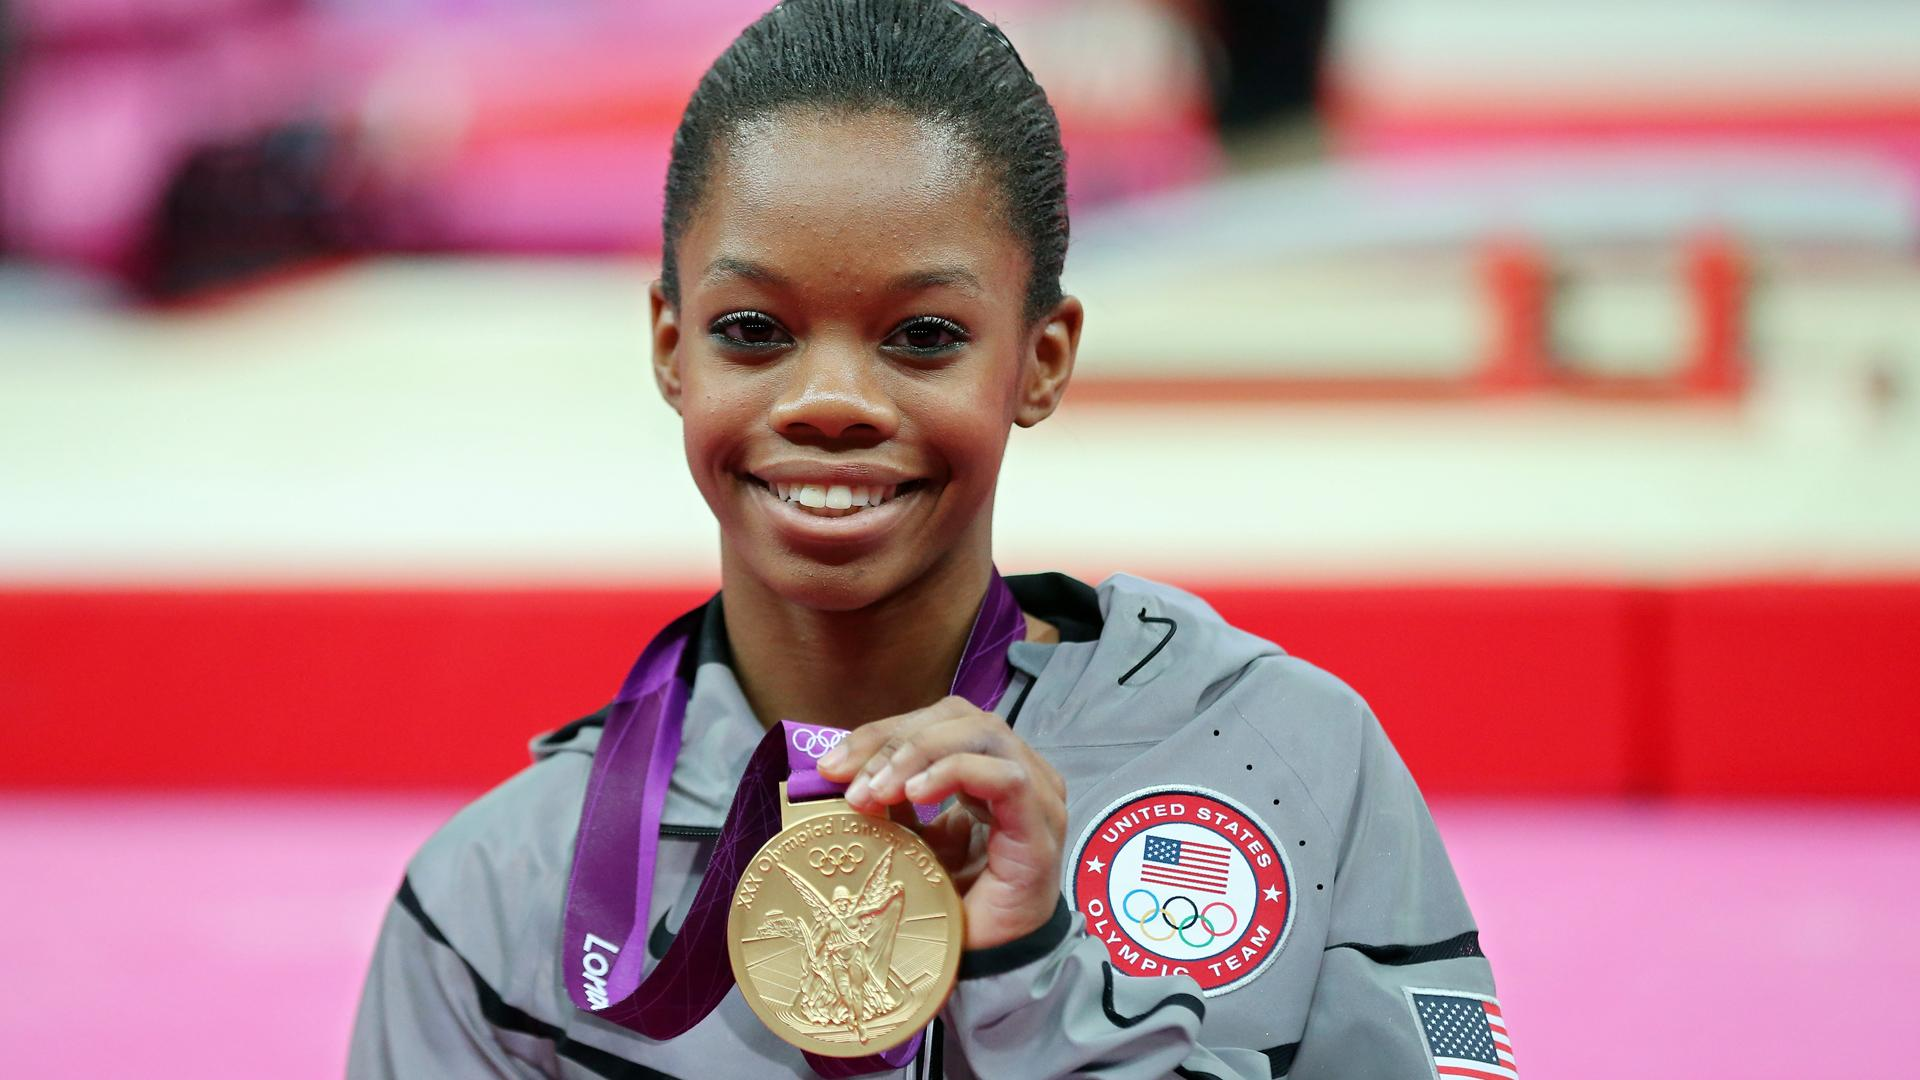 Gabby Douglas poses with her gold medal at the 2012 Olympics, London,